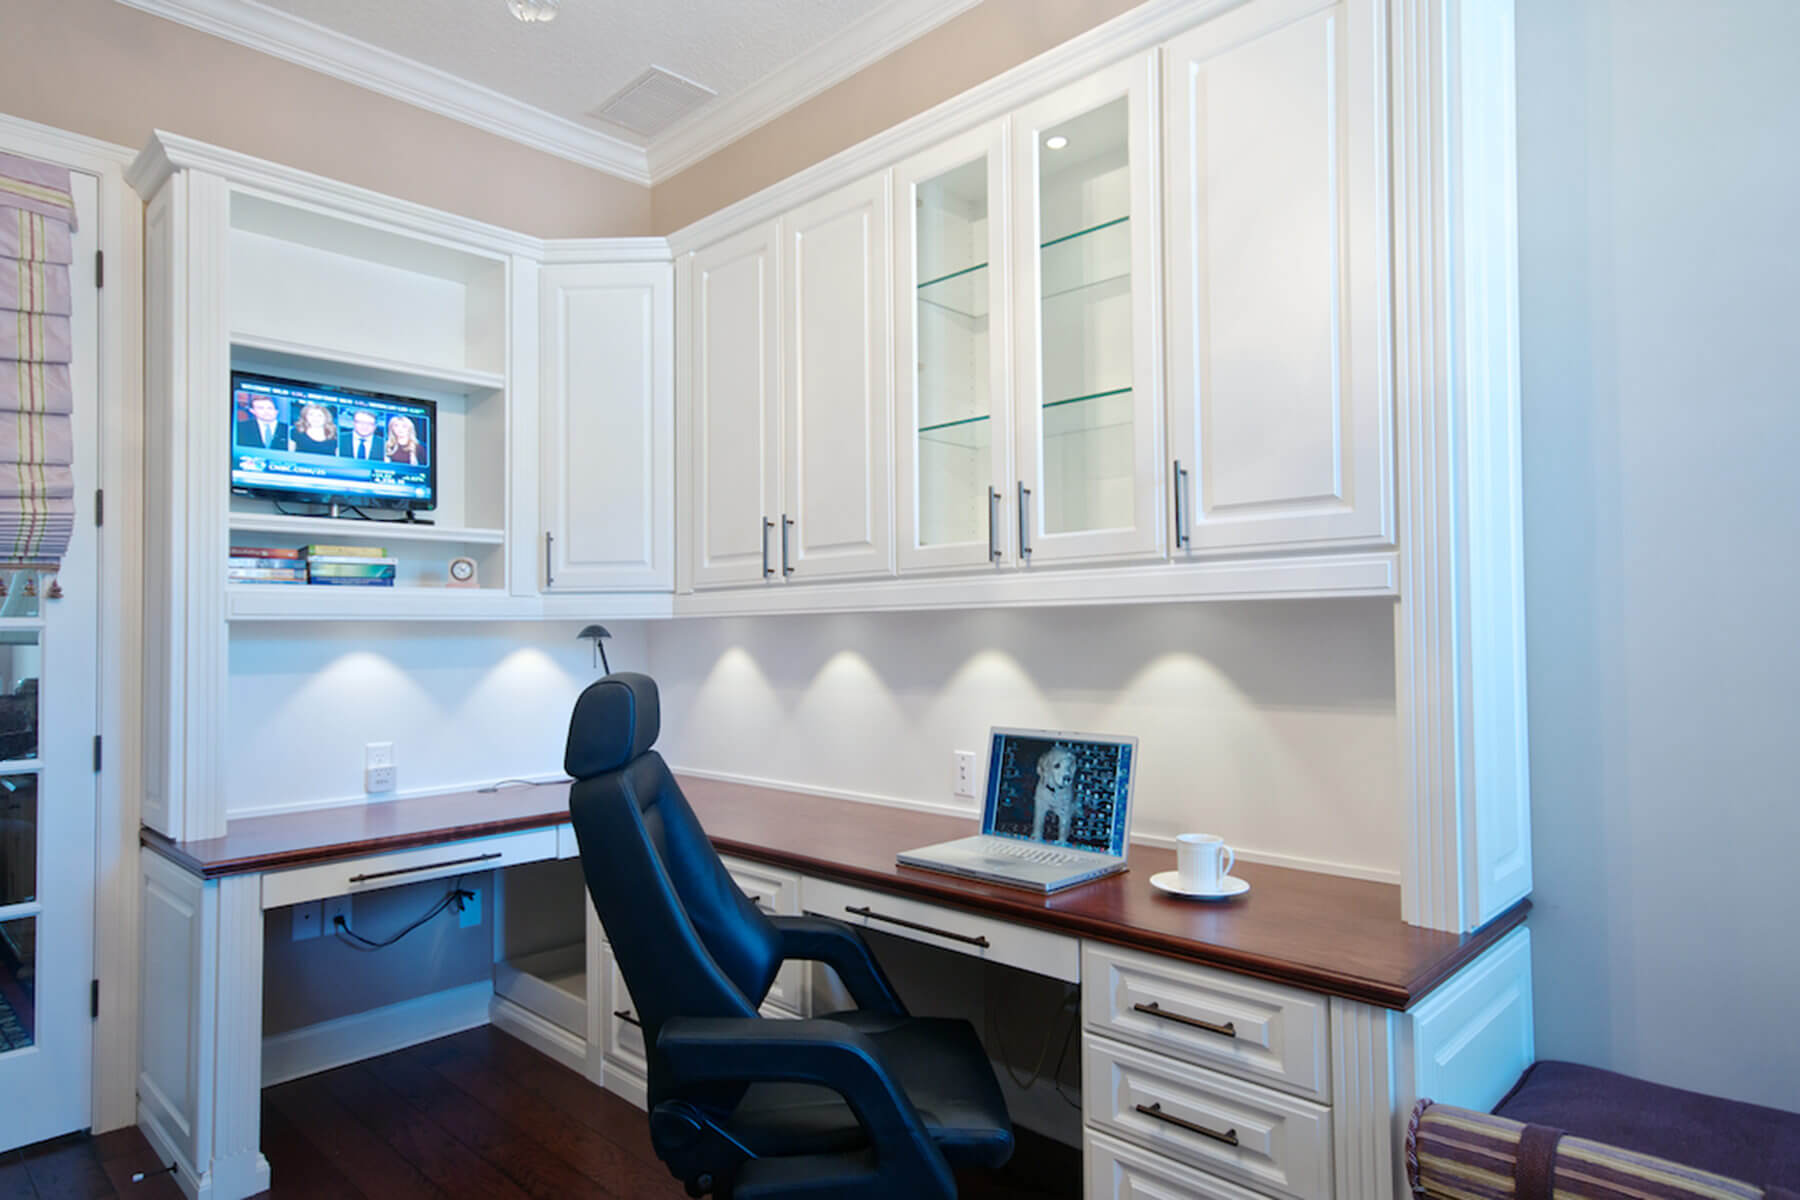 White Built-In Desk and Cupboards Above